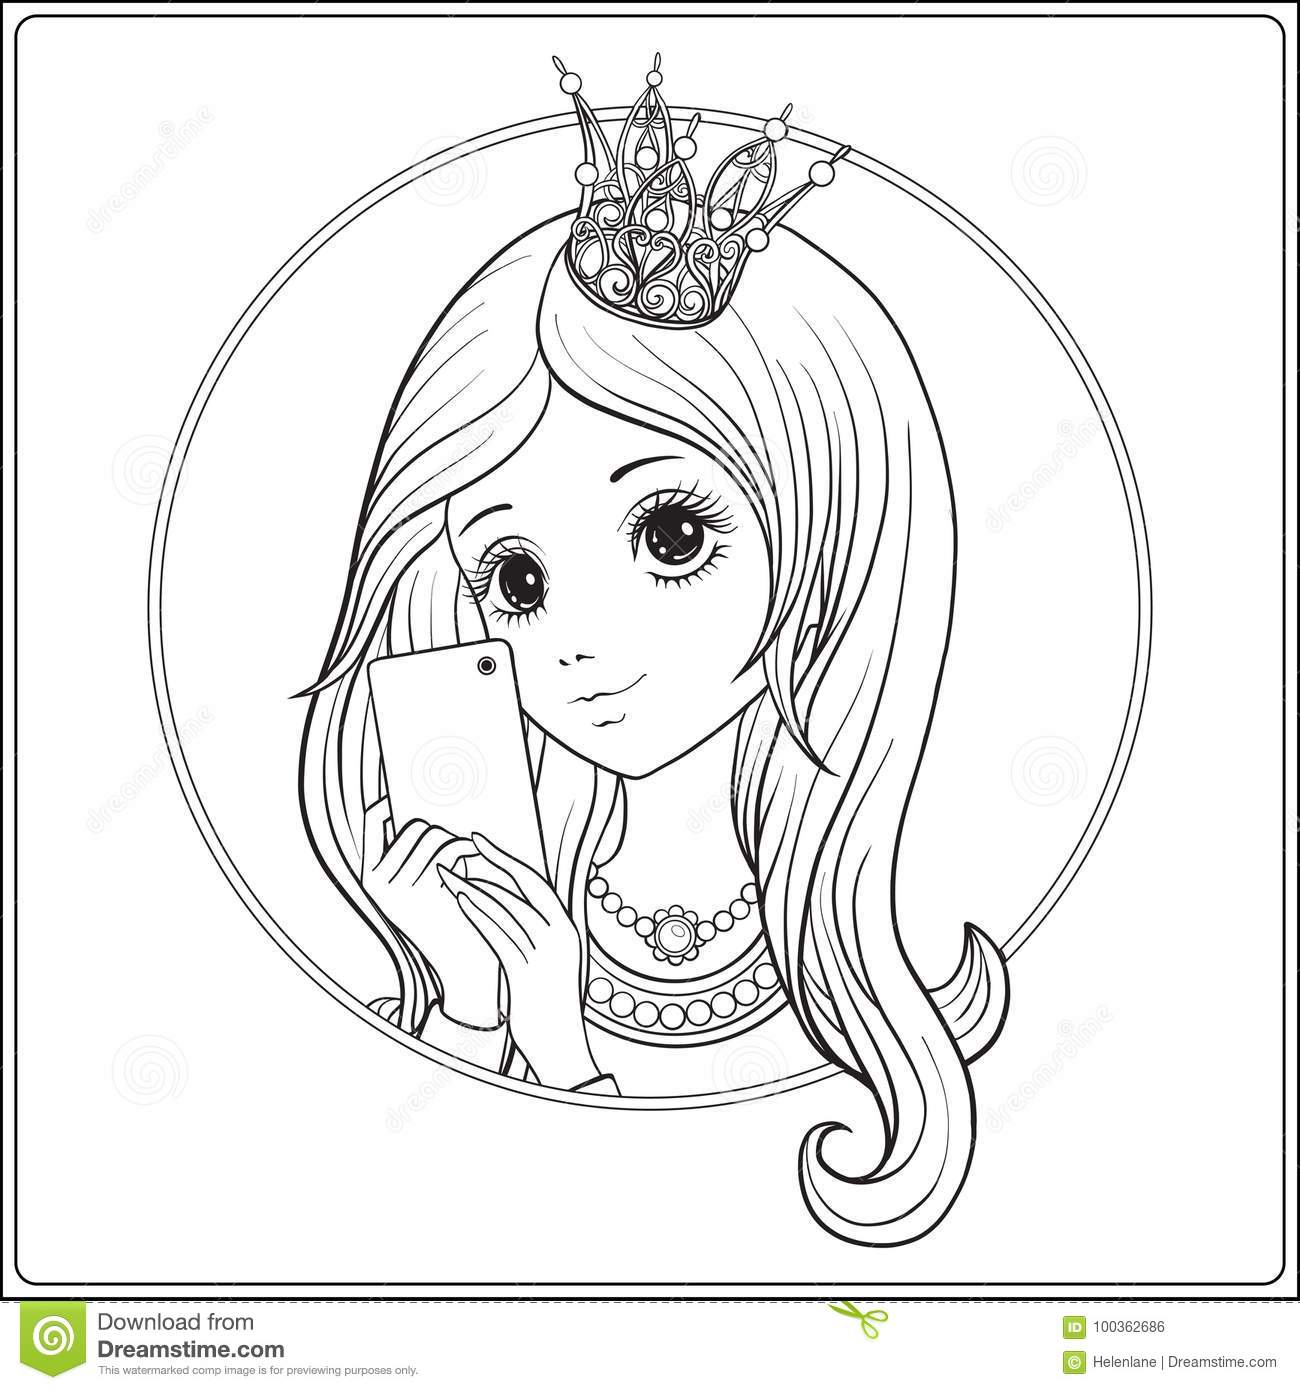 Young nice girl with long hear and princess Crown on her head ma